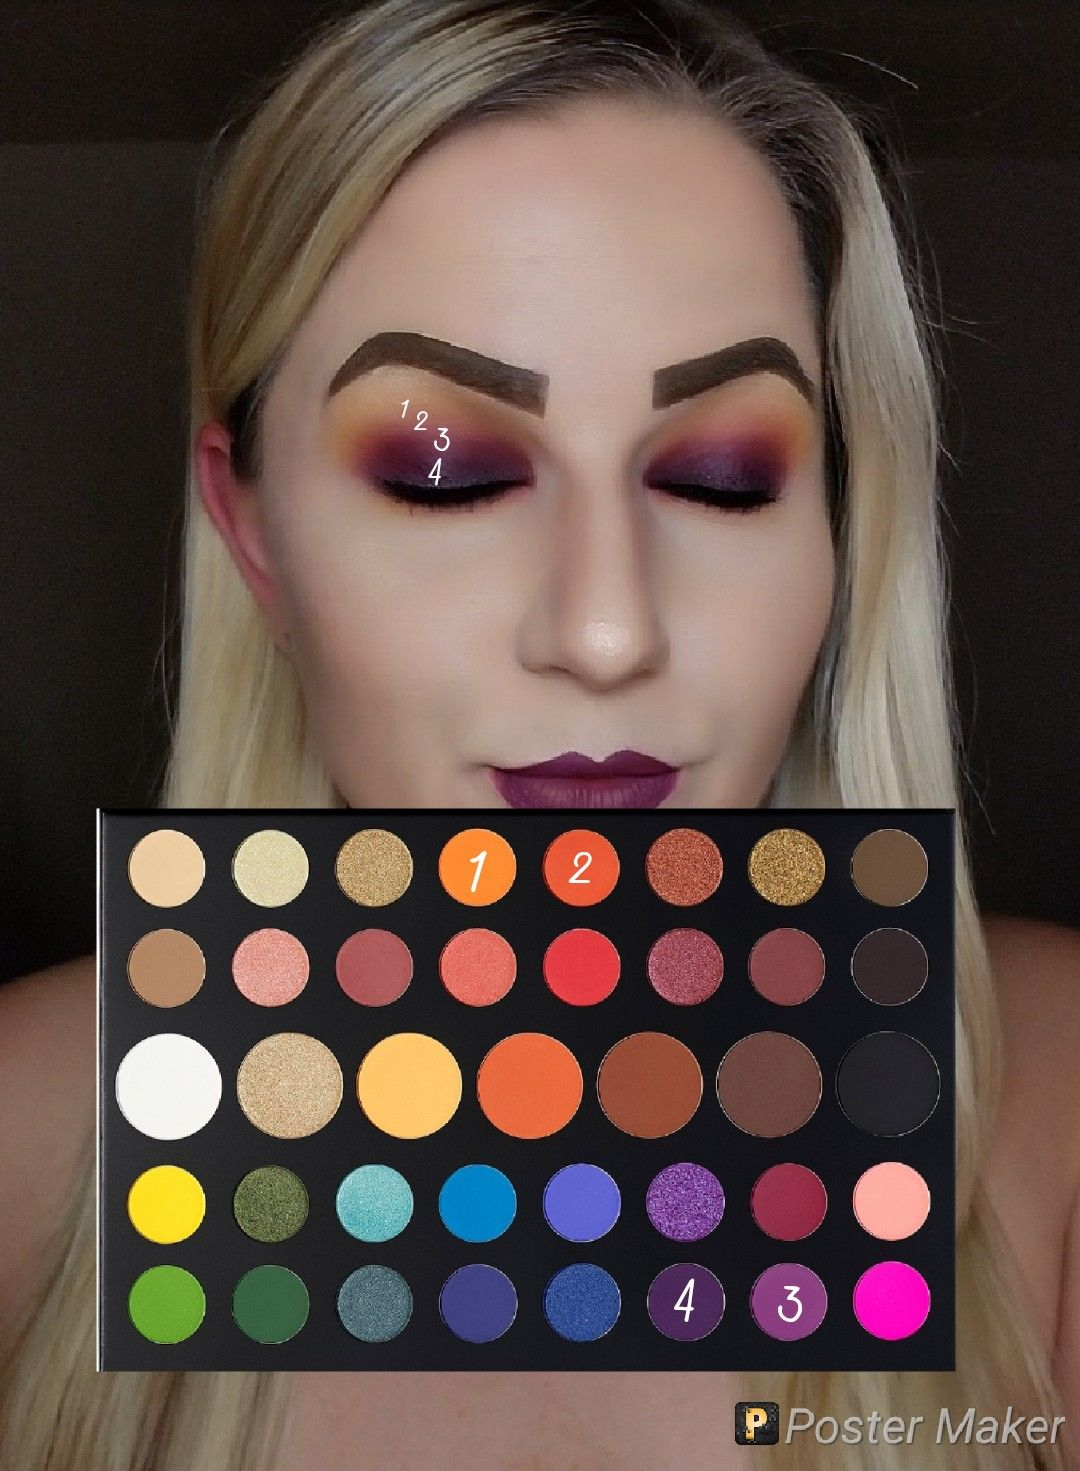 Look by numbers using the James Charles palette by morphe